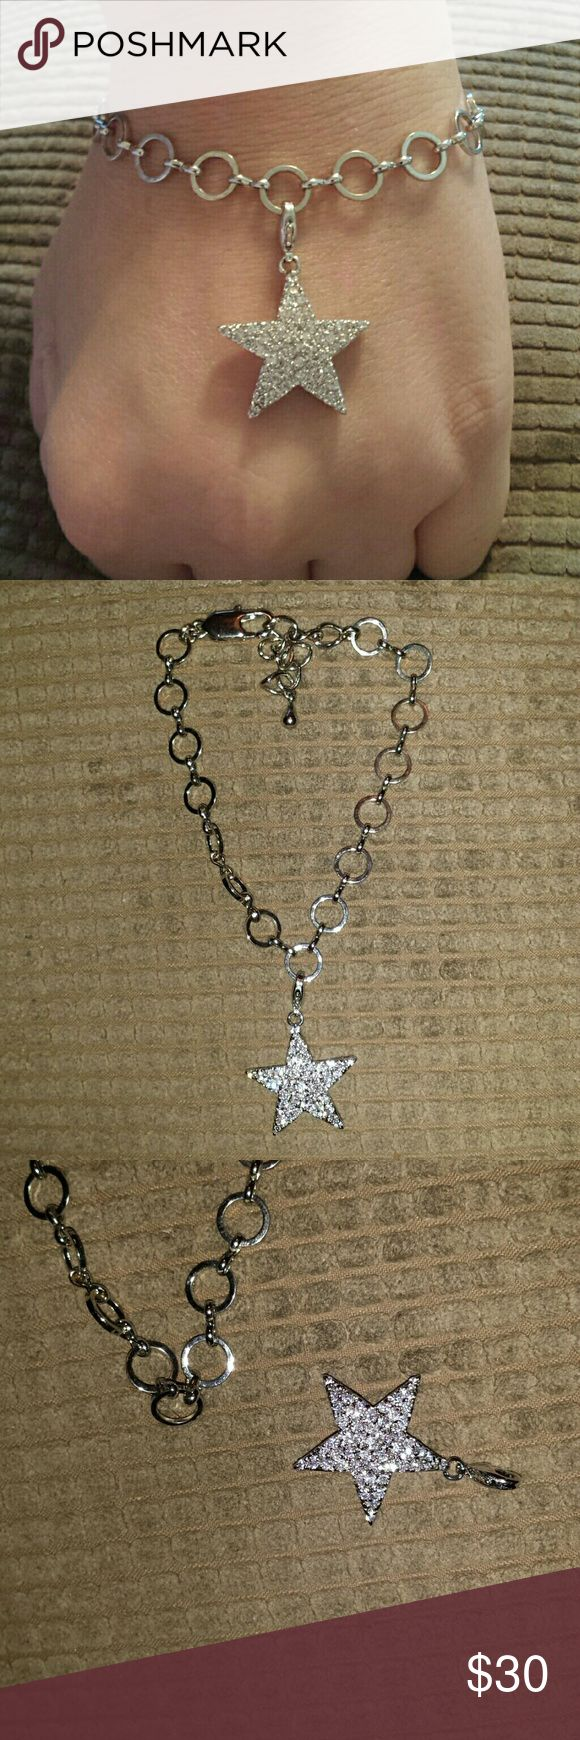 Park lane star bracelet Like new, hardly worn! Star detaches and can be worn on a necklace as well. No trades. Please use offer button when making offers. Park Lane Jewelry Bracelets